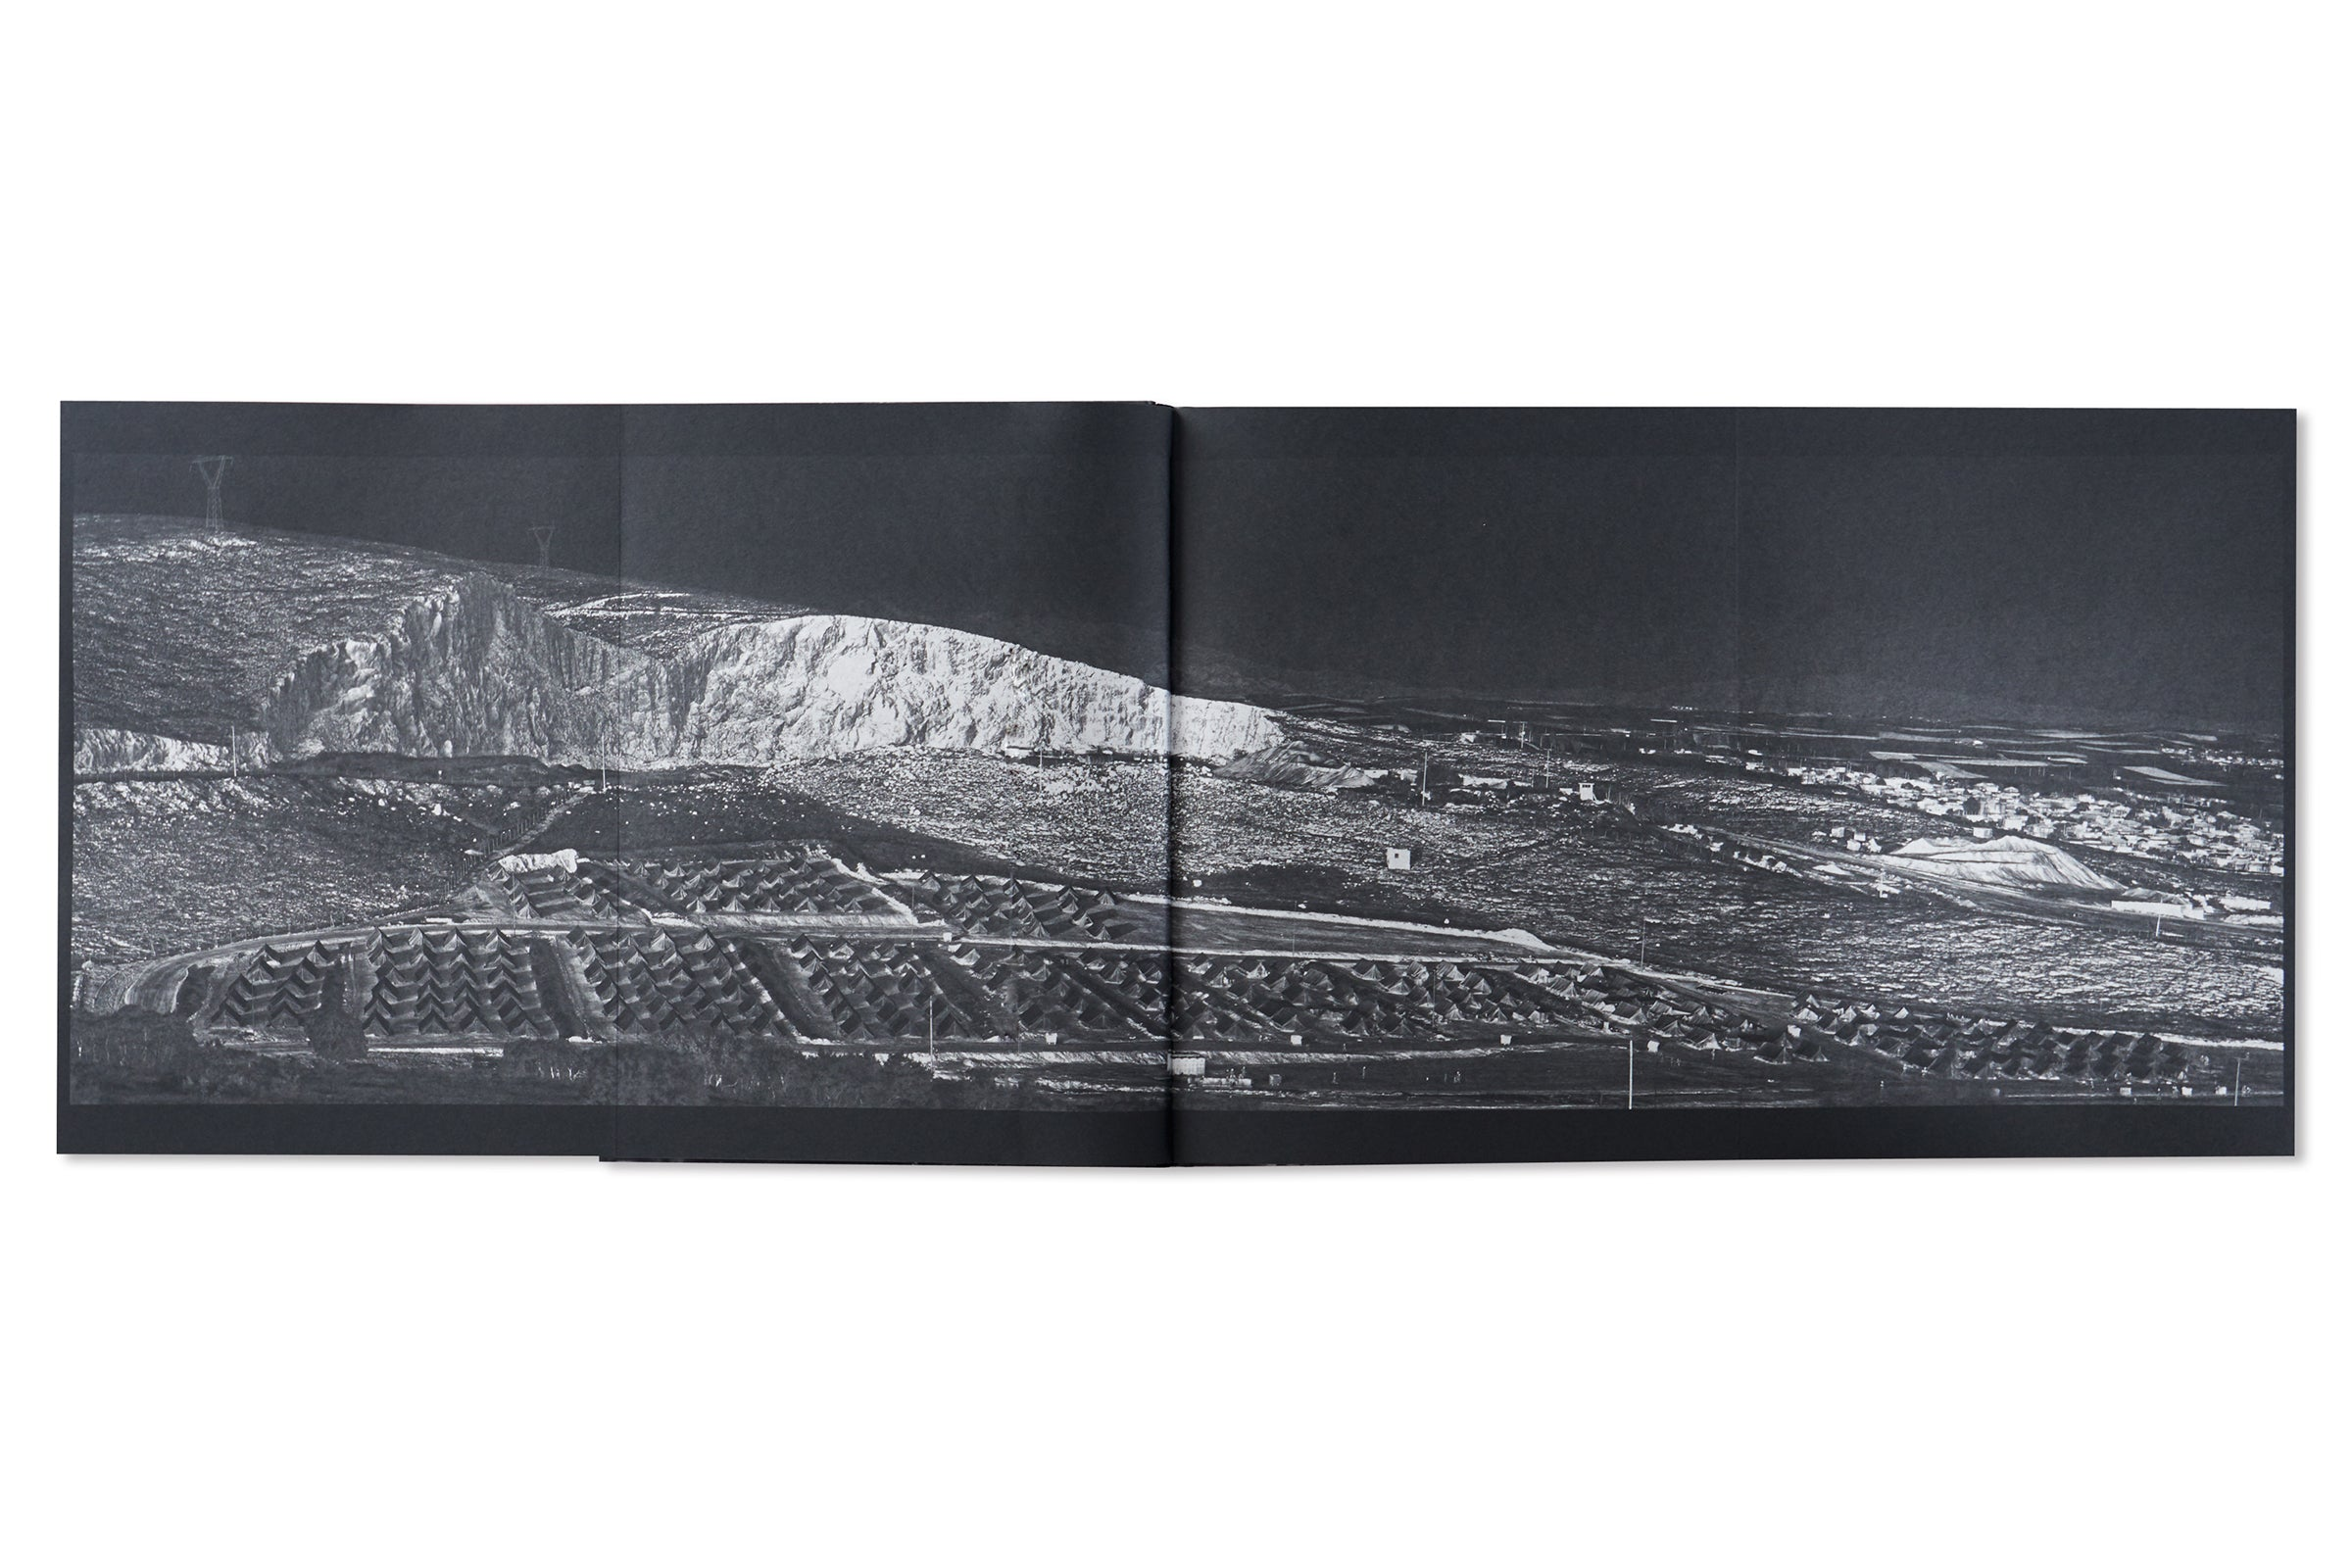 THE CASTLE by Richard Mosse